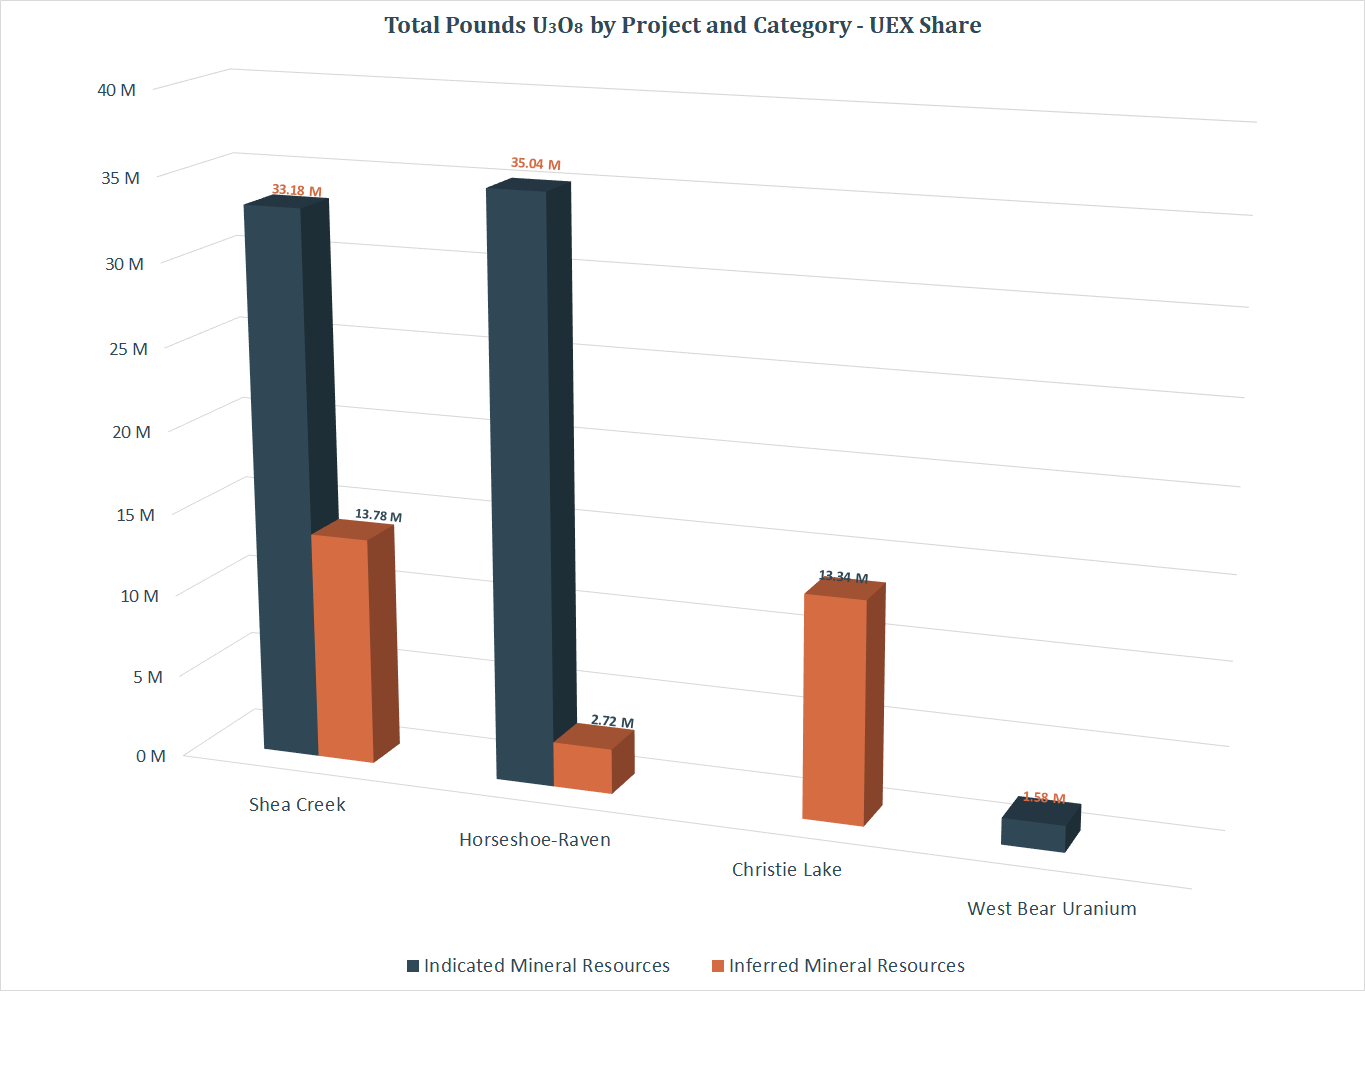 Millions of Pounds U3O8 by Category - All Projects chart